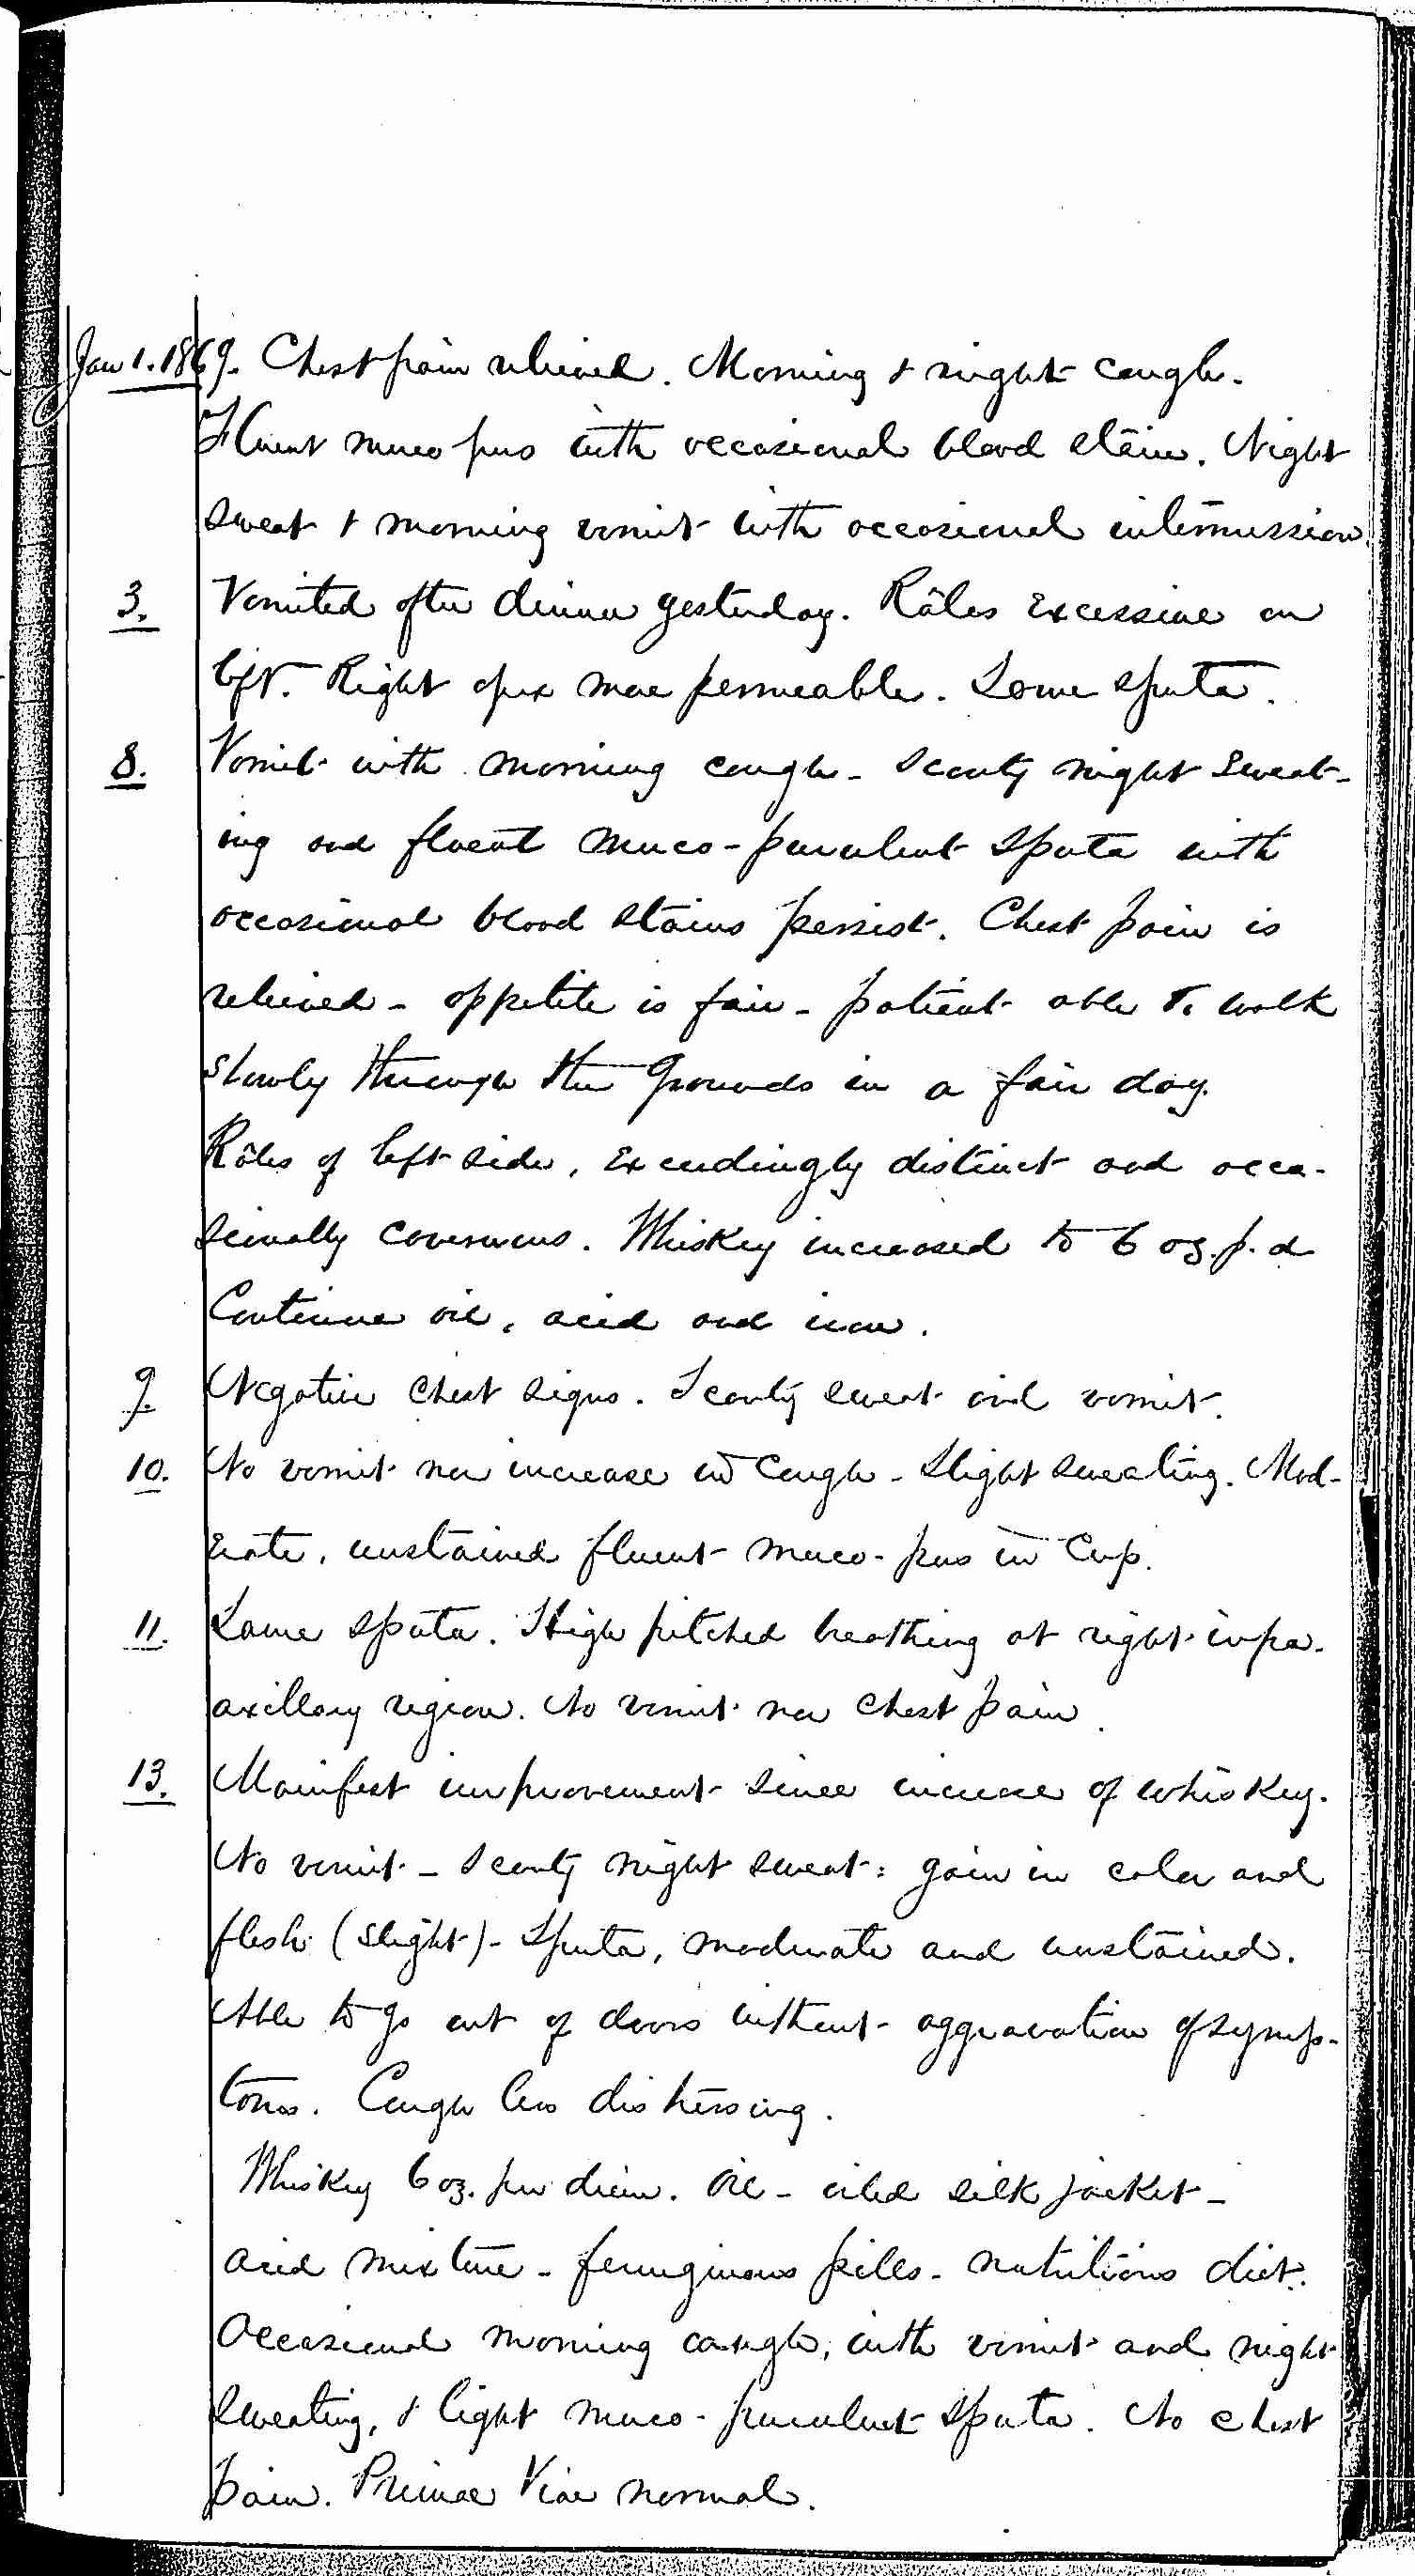 Entry for Hugh Riley (page 21 of 31) in the log Hospital Tickets and Case Papers - Naval Hospital - Washington, D.C. - 1868-69